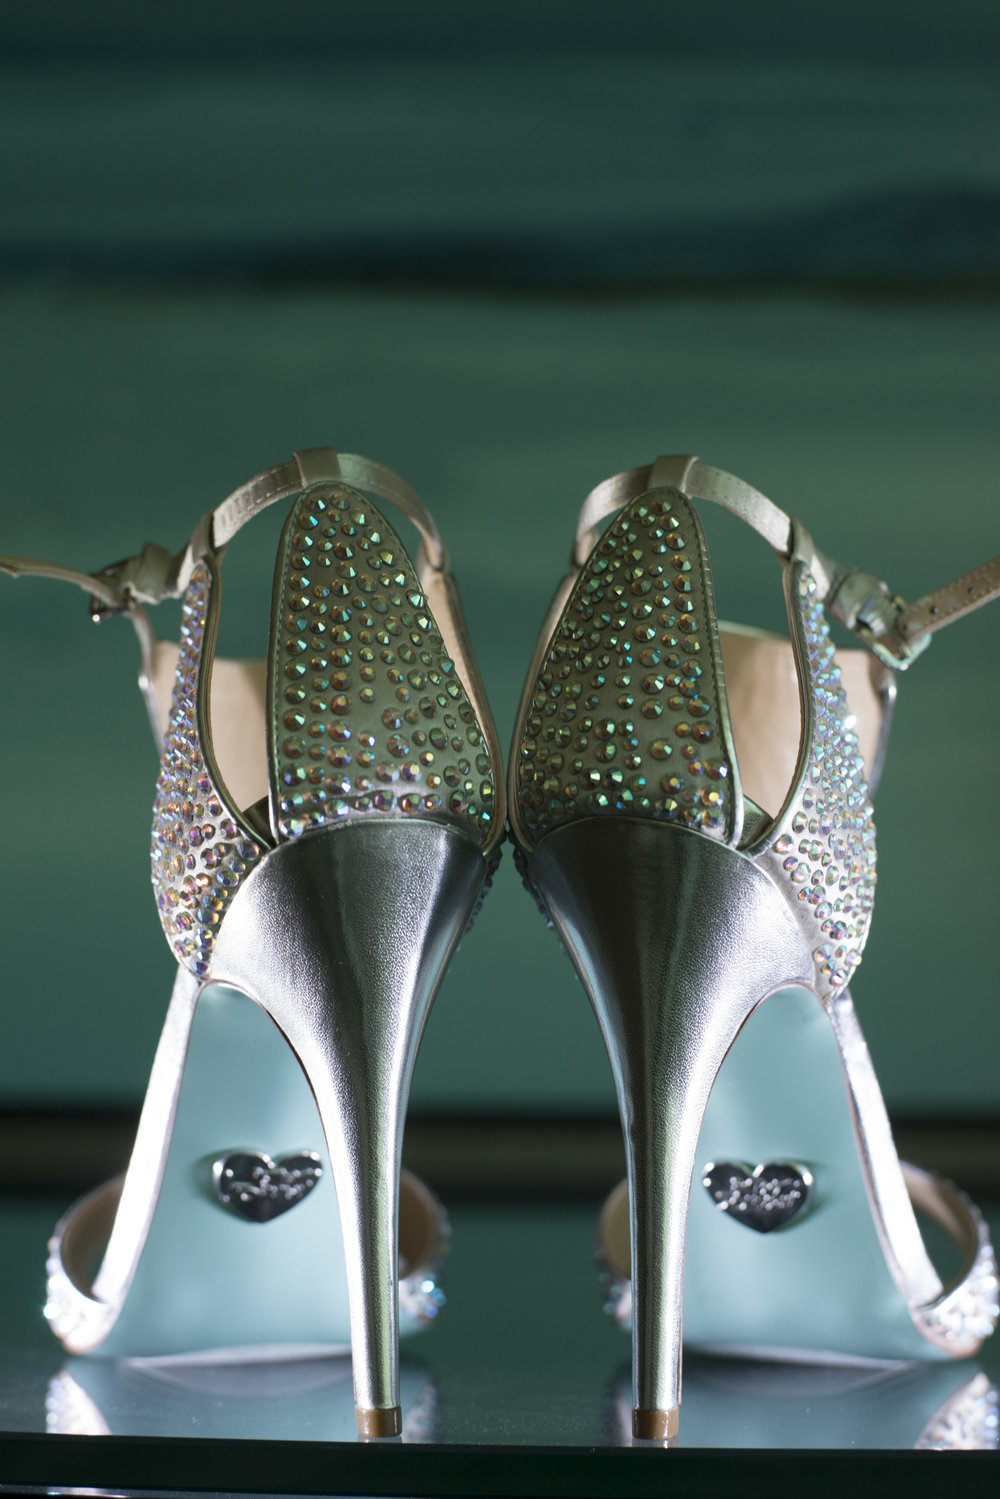 Blue bottom wedding shoes by Betsy Johnson. Las Vegas Wedding Planner Andrea Eppolito | Image by AltF Photography.